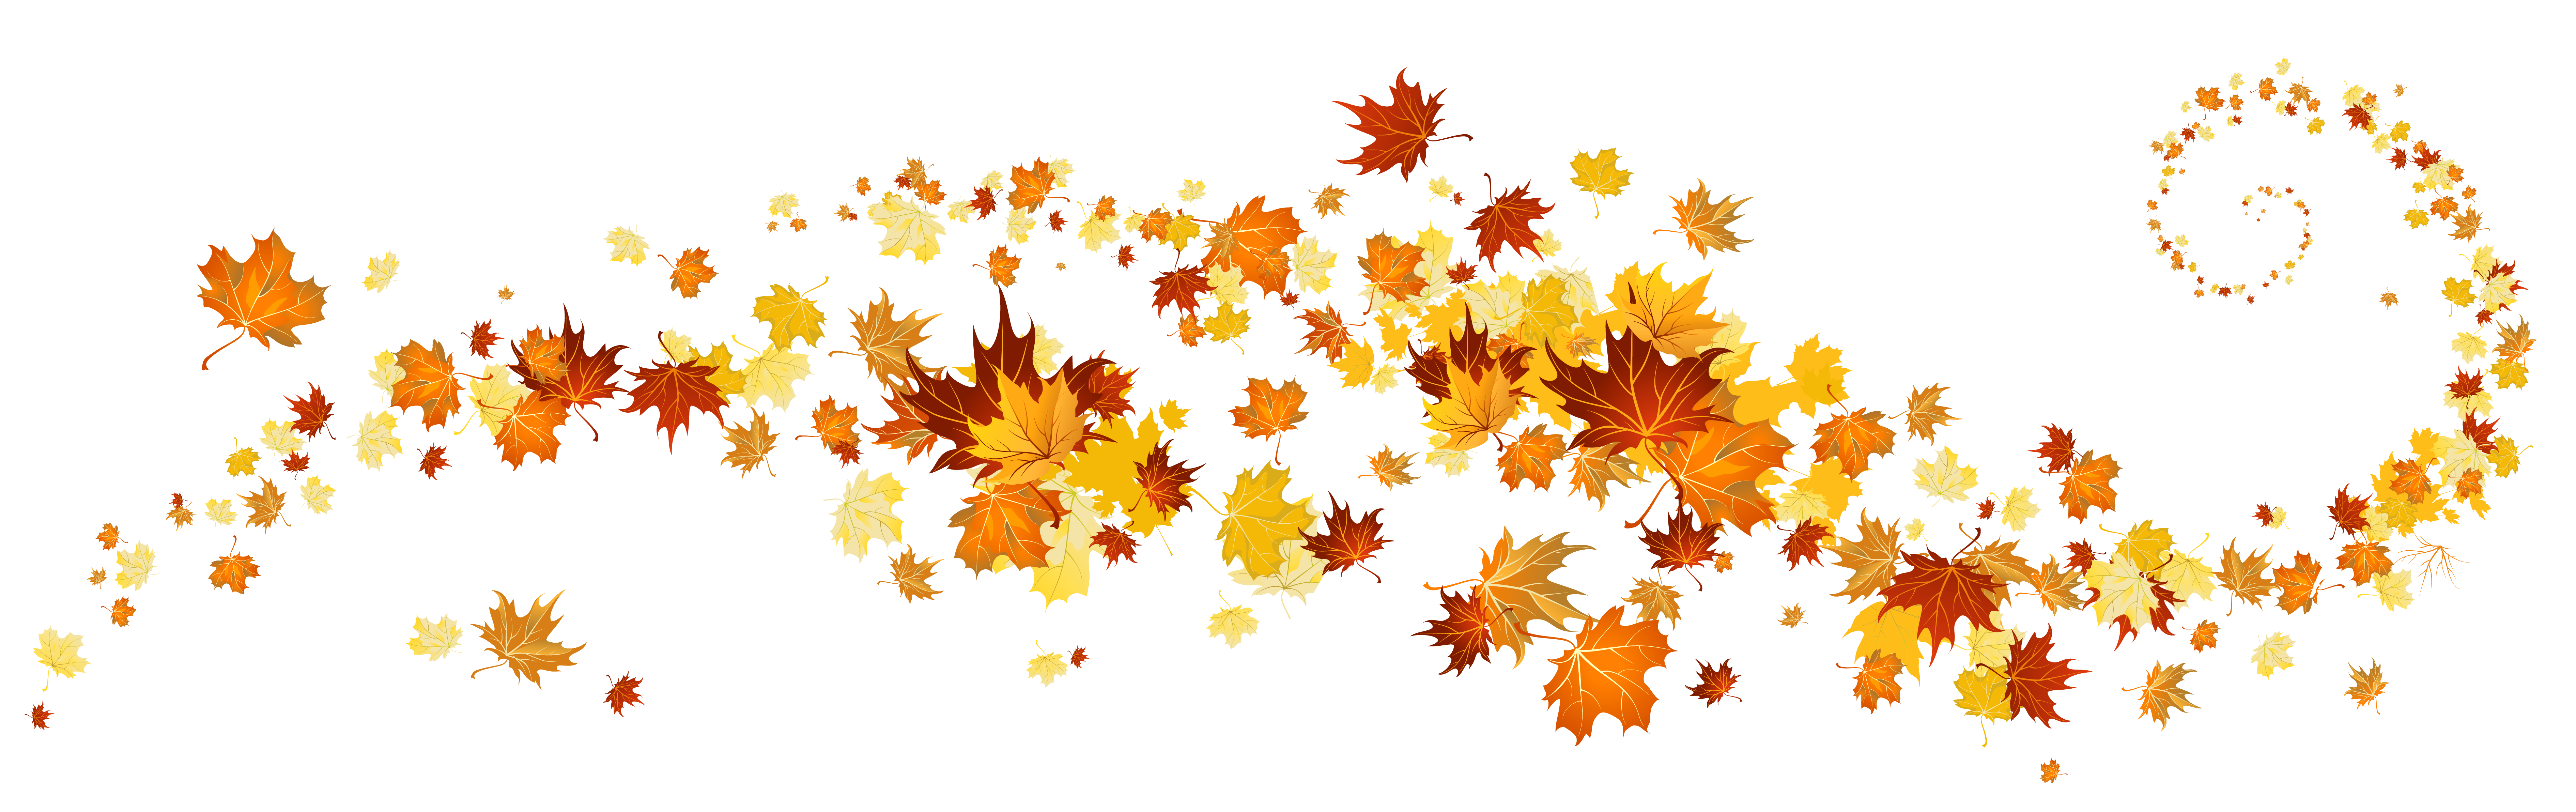 Fall Decorations Clipart Transparent Png.